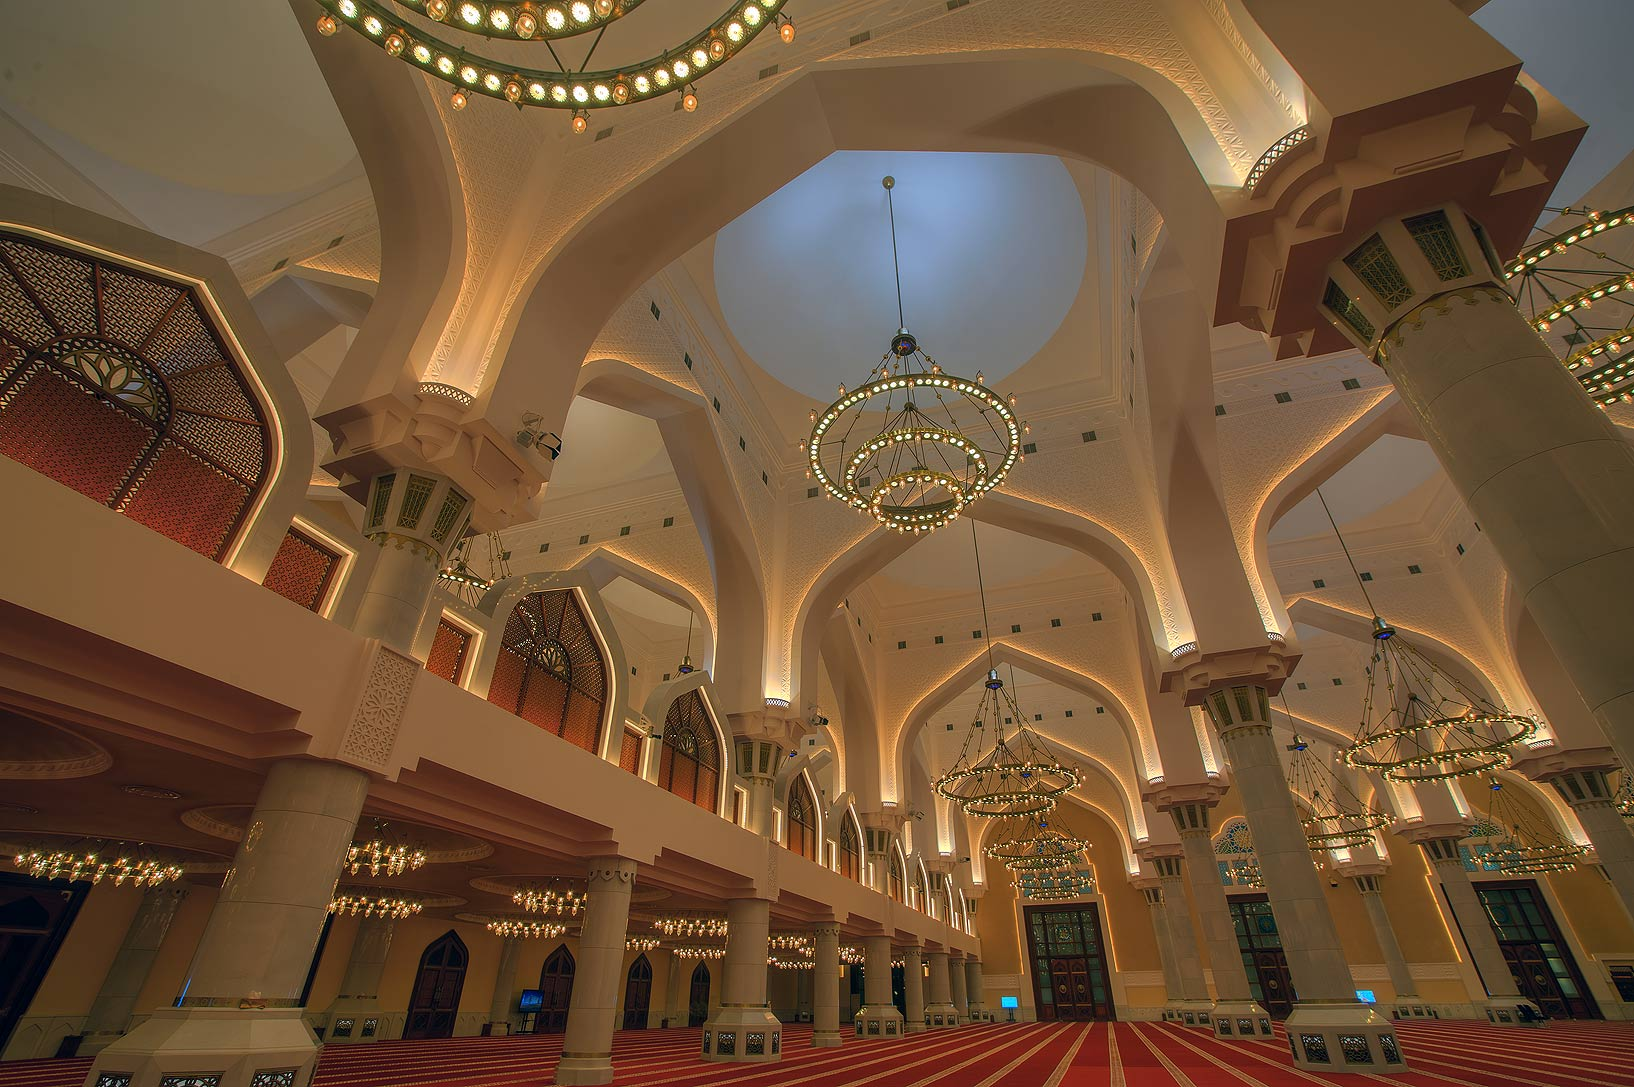 Large hall with columns and chandeliers inside...Ibn Abdul Wahhab Mosque). Doha, Qatar